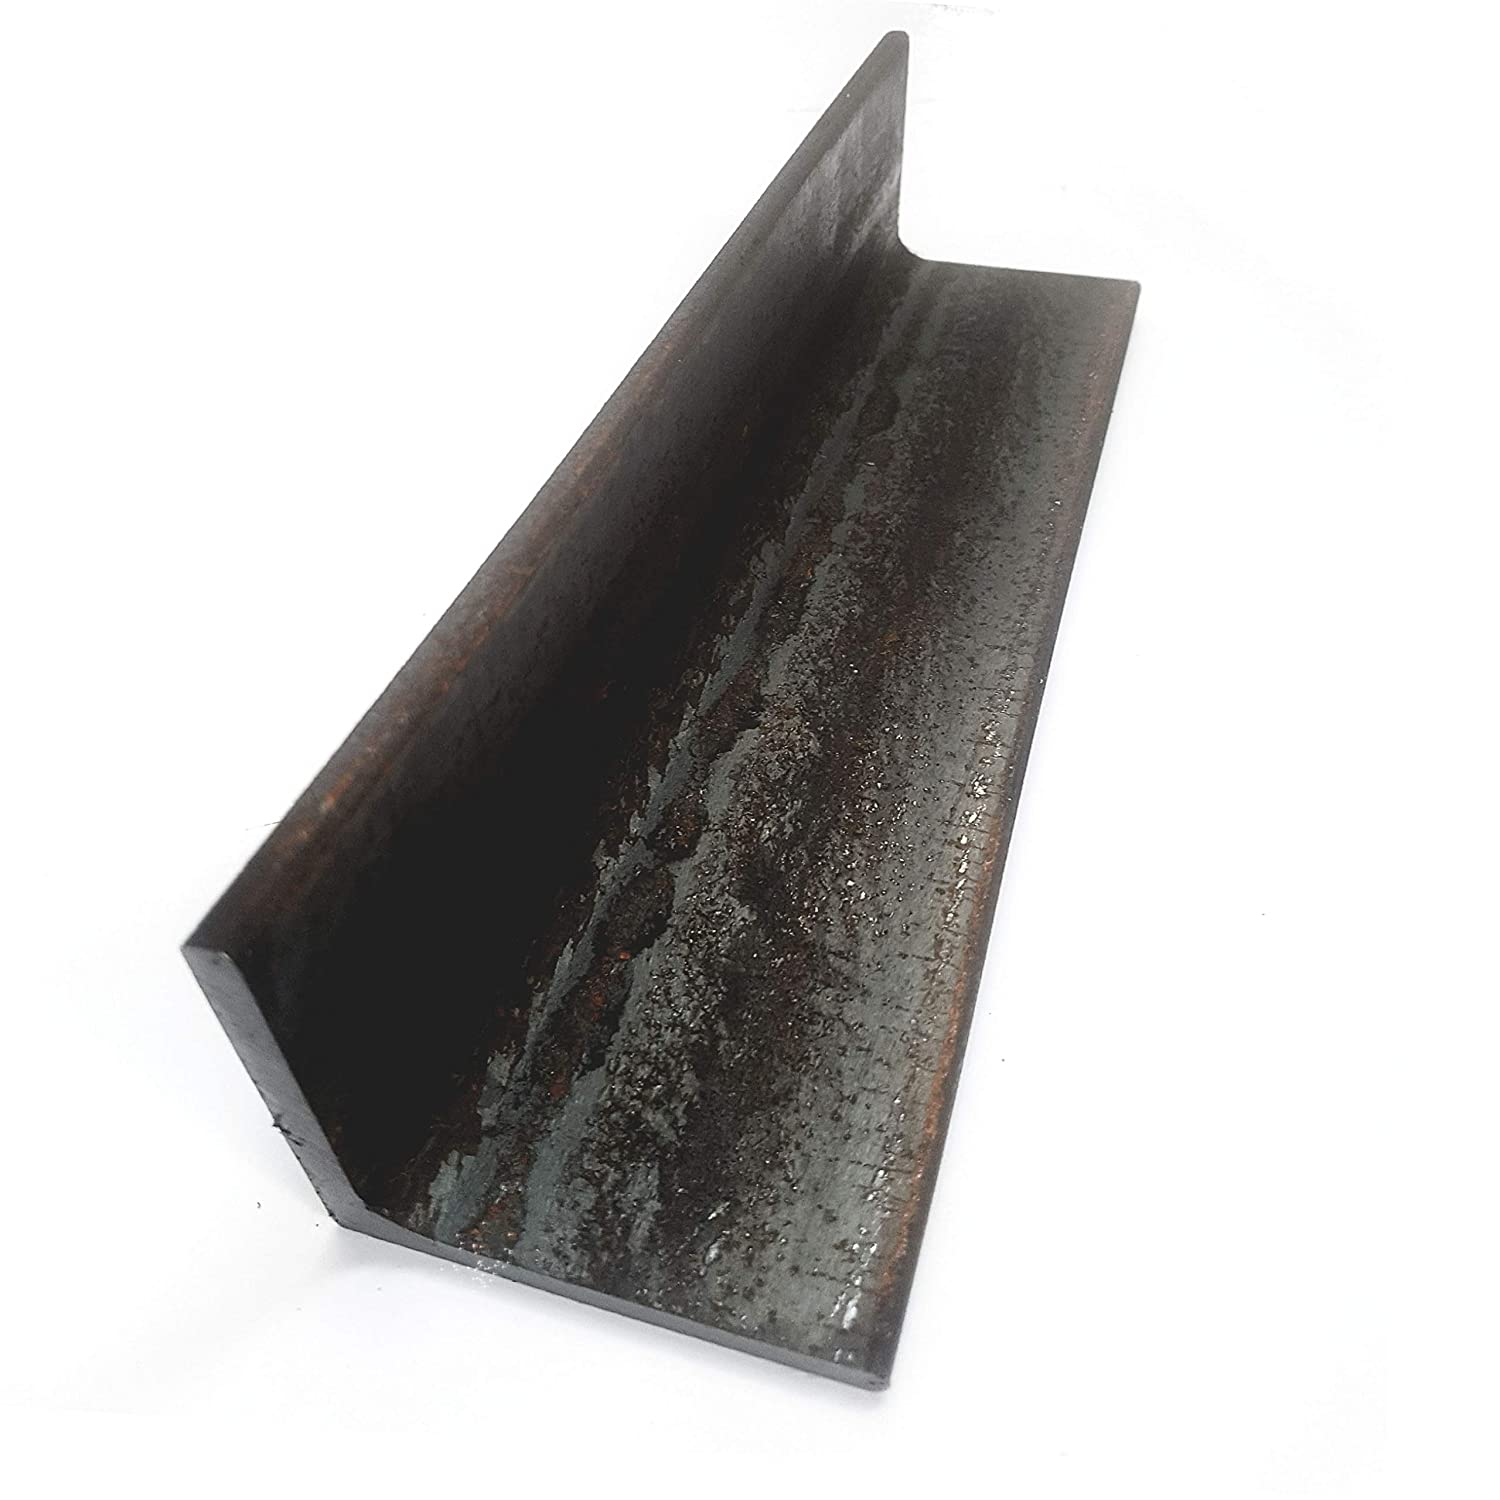 20 x 20 x 3mm - 400mm Mild Steel Angle Iron Plan Steel Section Lengths